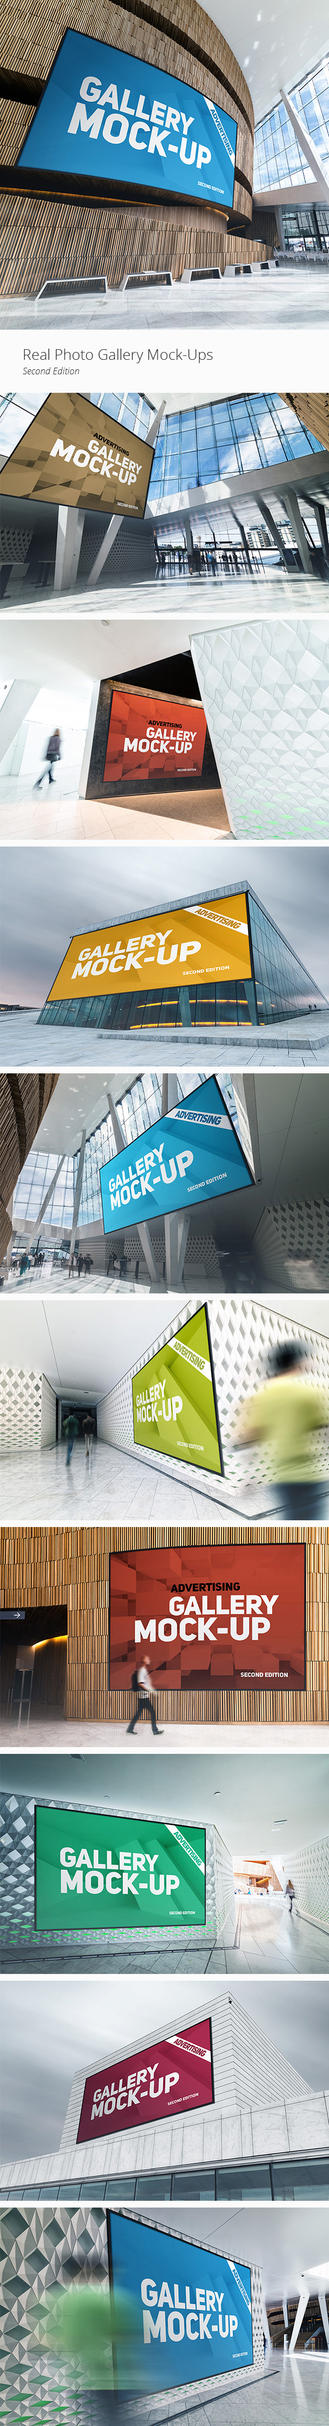 Gallery Poster Mock-Up by Genetic96